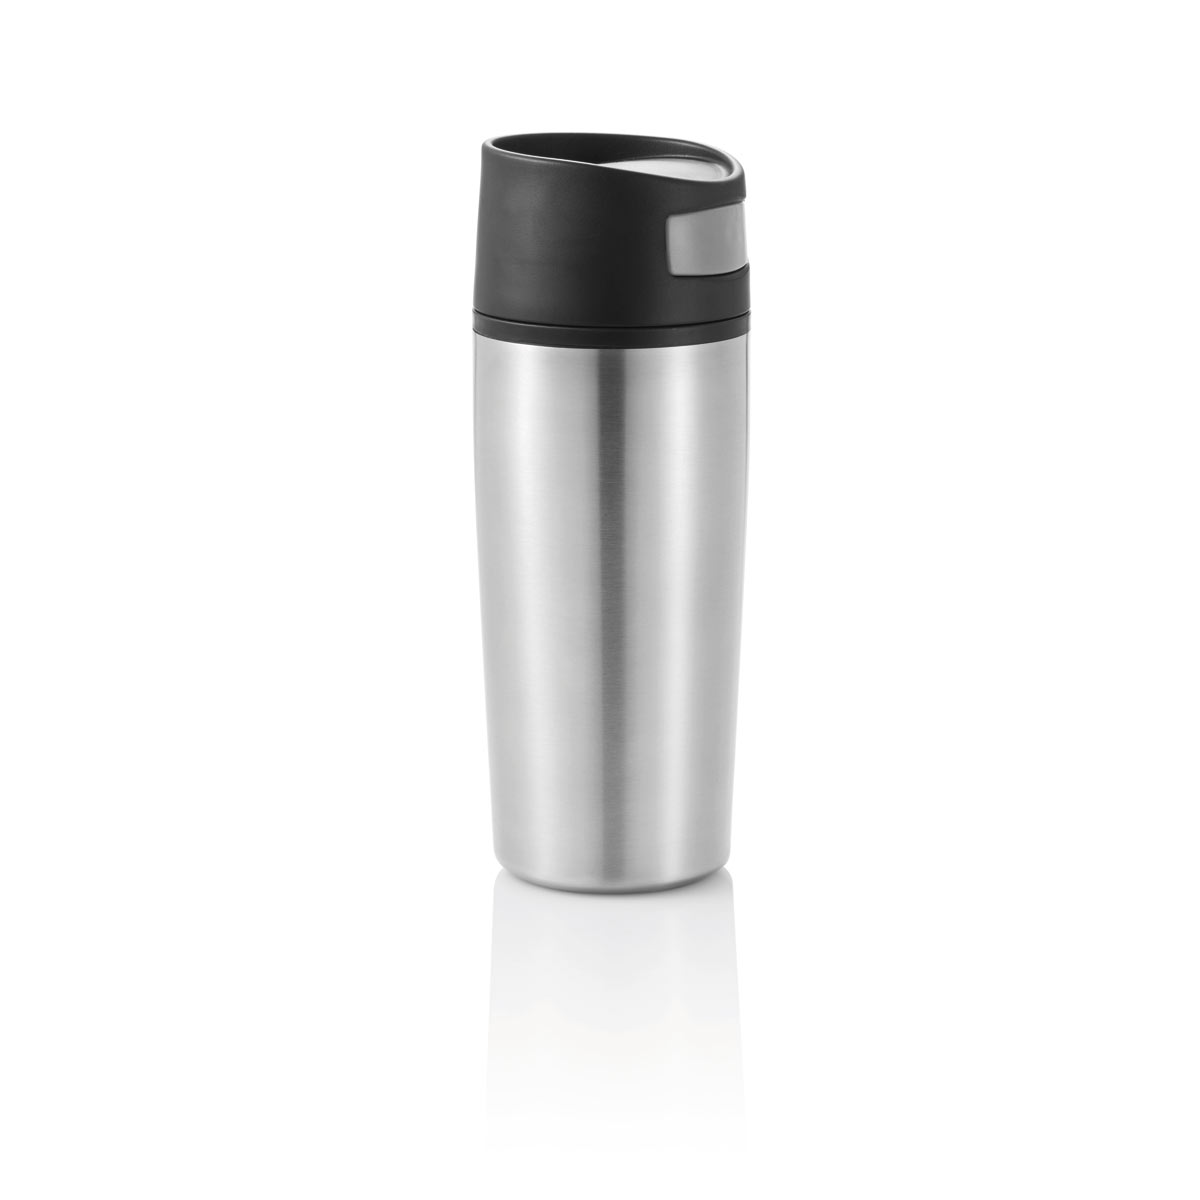 mug thermo publicitaire mug inox bouteille publicitaire mug inox. Black Bedroom Furniture Sets. Home Design Ideas